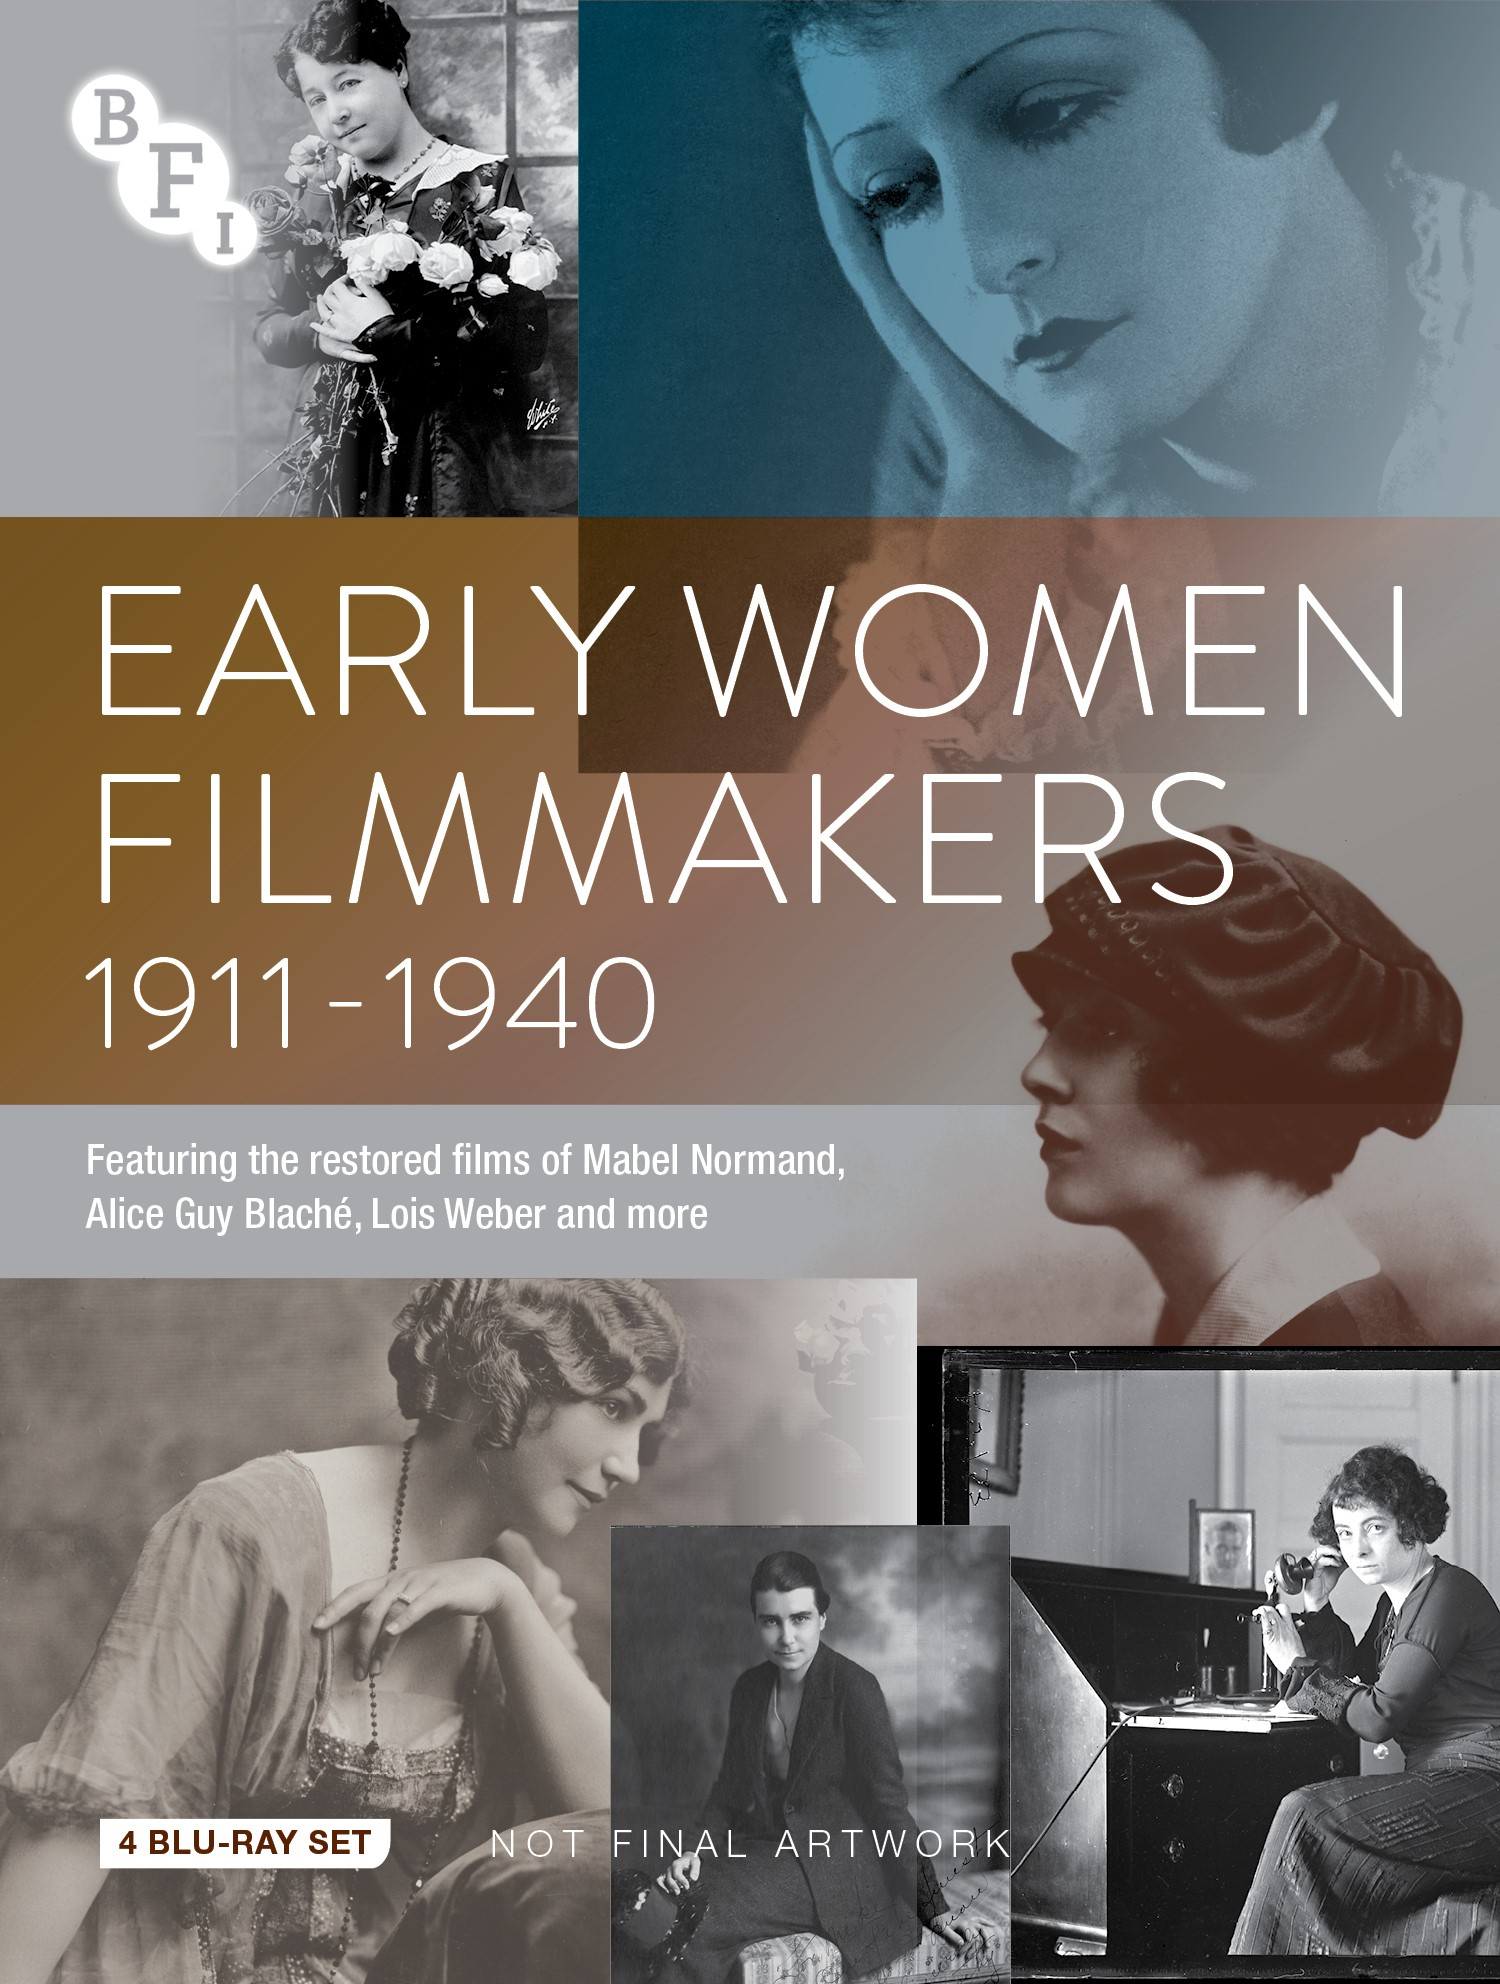 Buy PRE-ORDER Early Women Filmmakers Collection (4 Blu-ray Set)